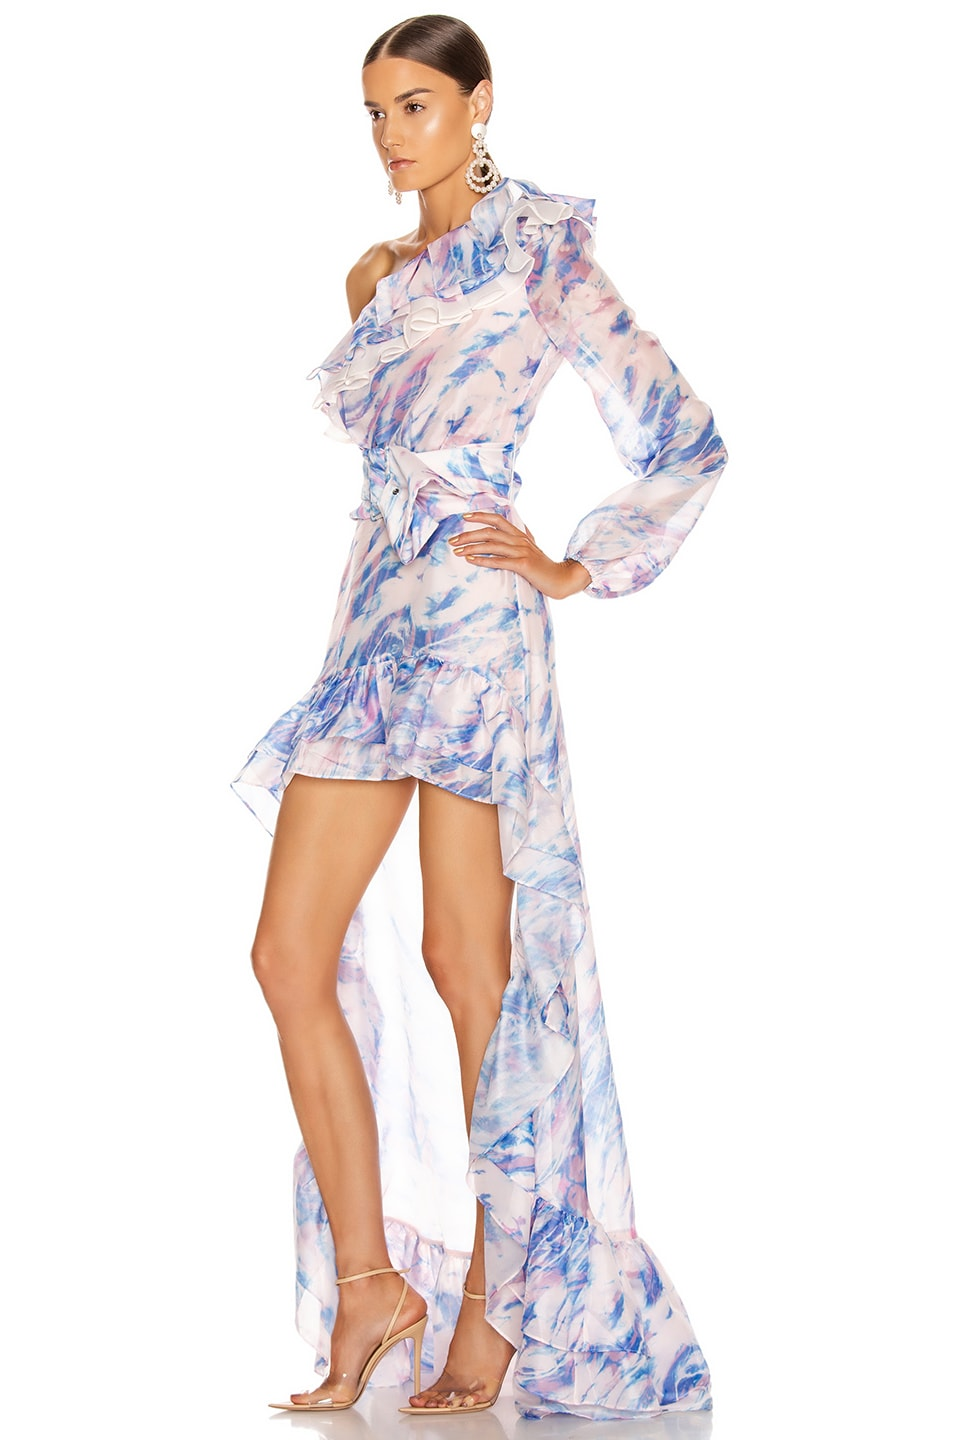 Image 3 of Atoir The Whirlwind Dress in Dreamscape Print